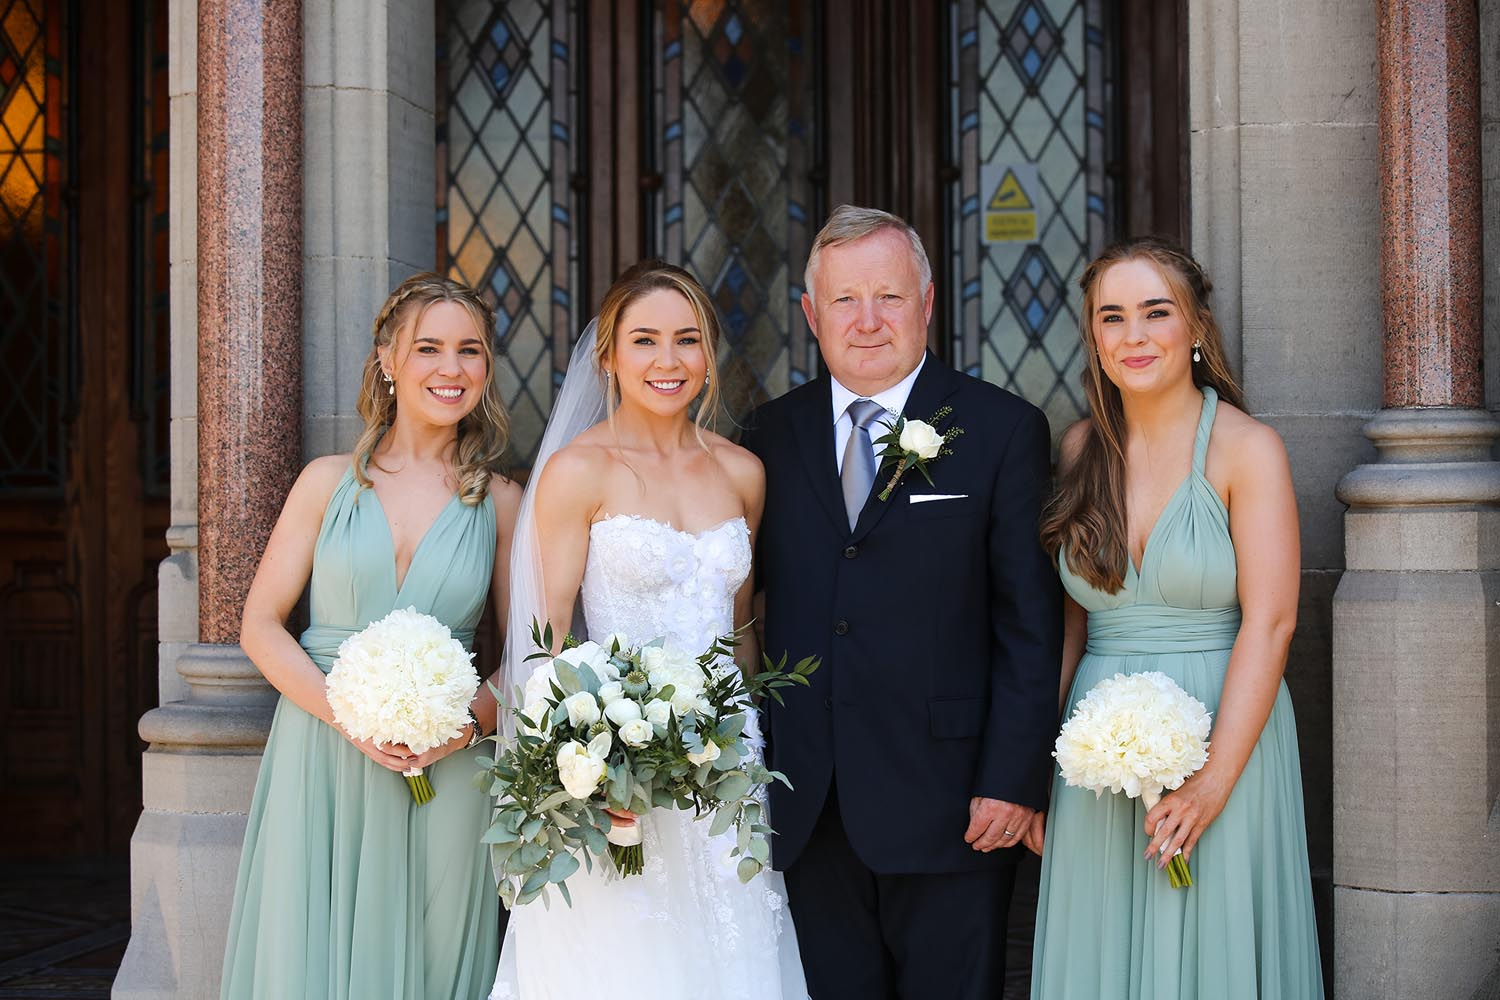 Bride with her father and bridesmaids on her wedding day